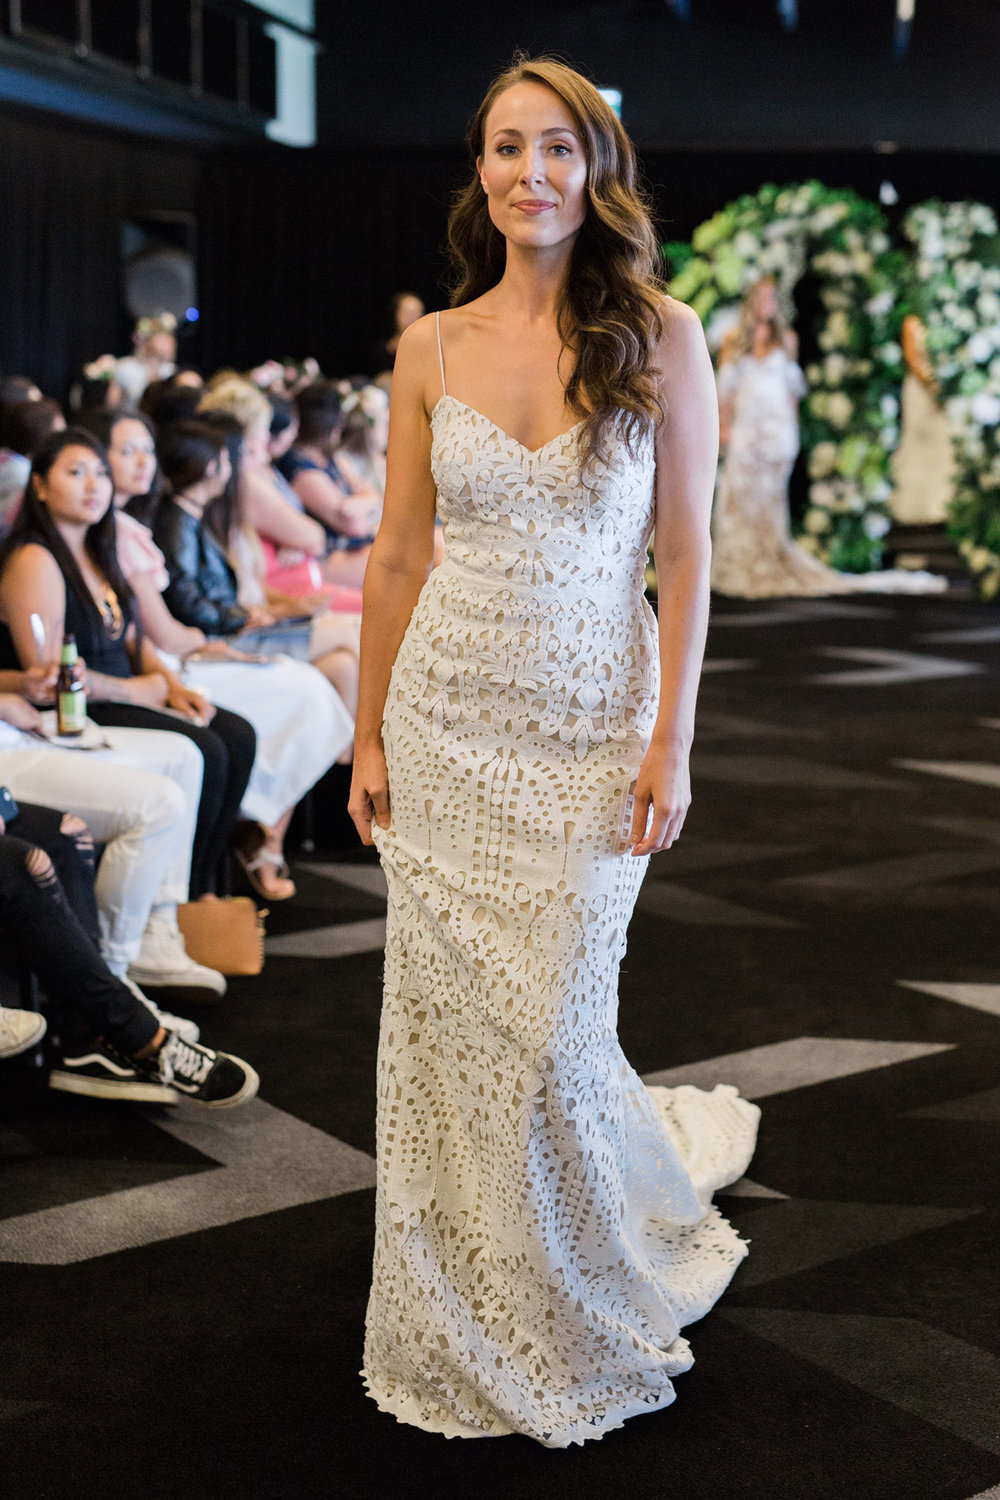 Love-Wedding-Festival-Sydney-Wedding-Gown-Instyle-Bridal-8.jpg